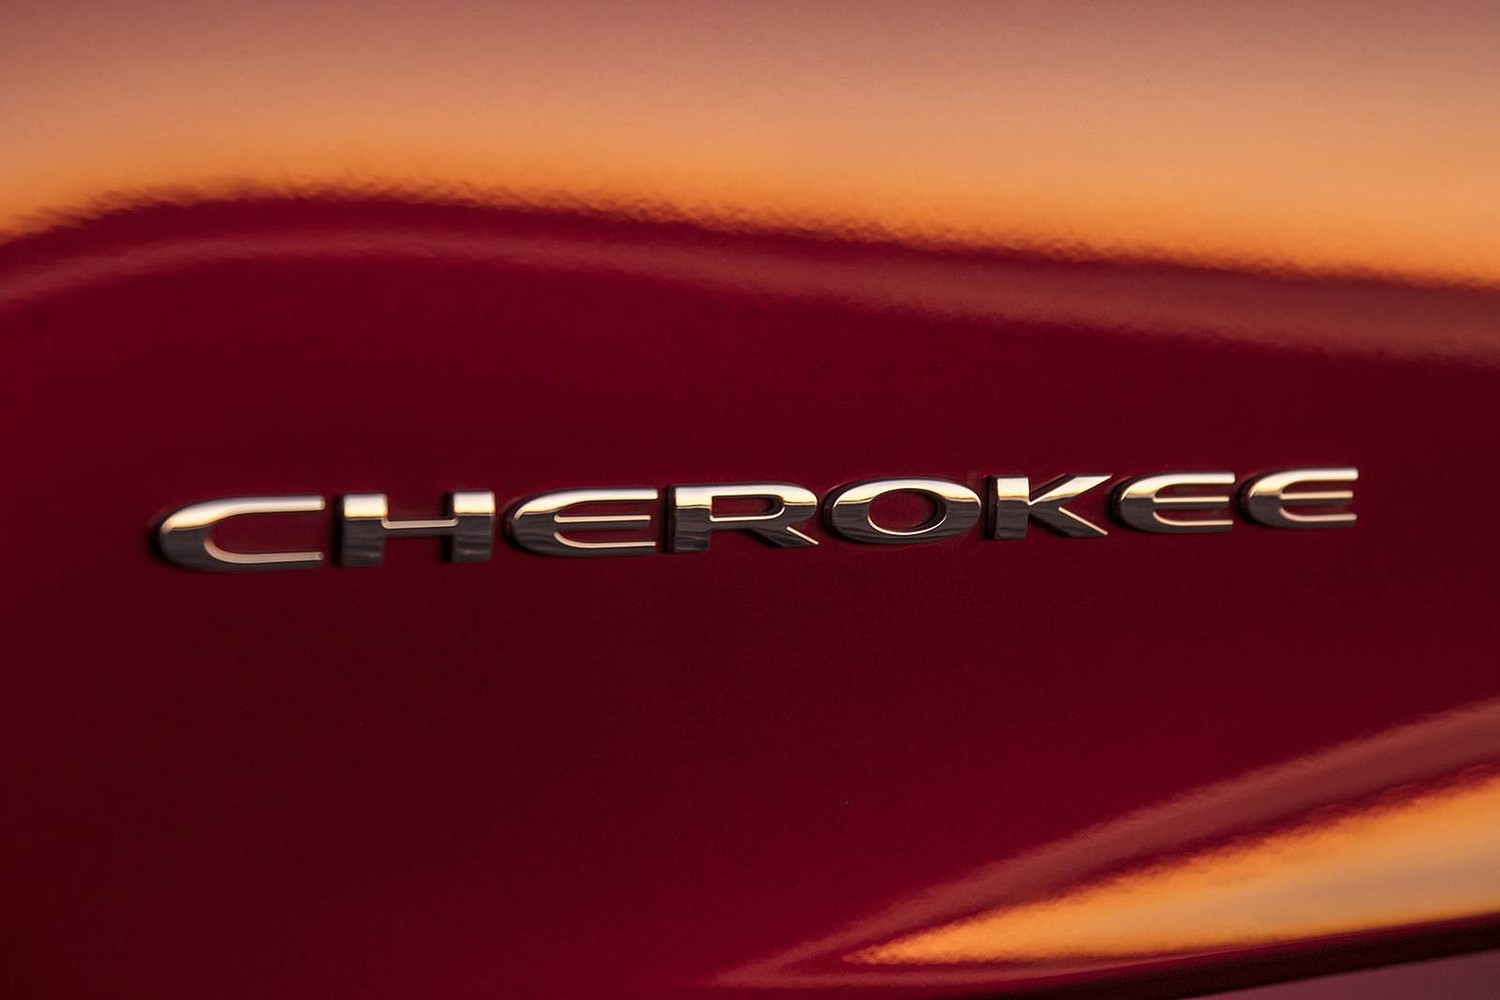 2019 Jeep Cherokee Overland 4dr SUV Front Badge